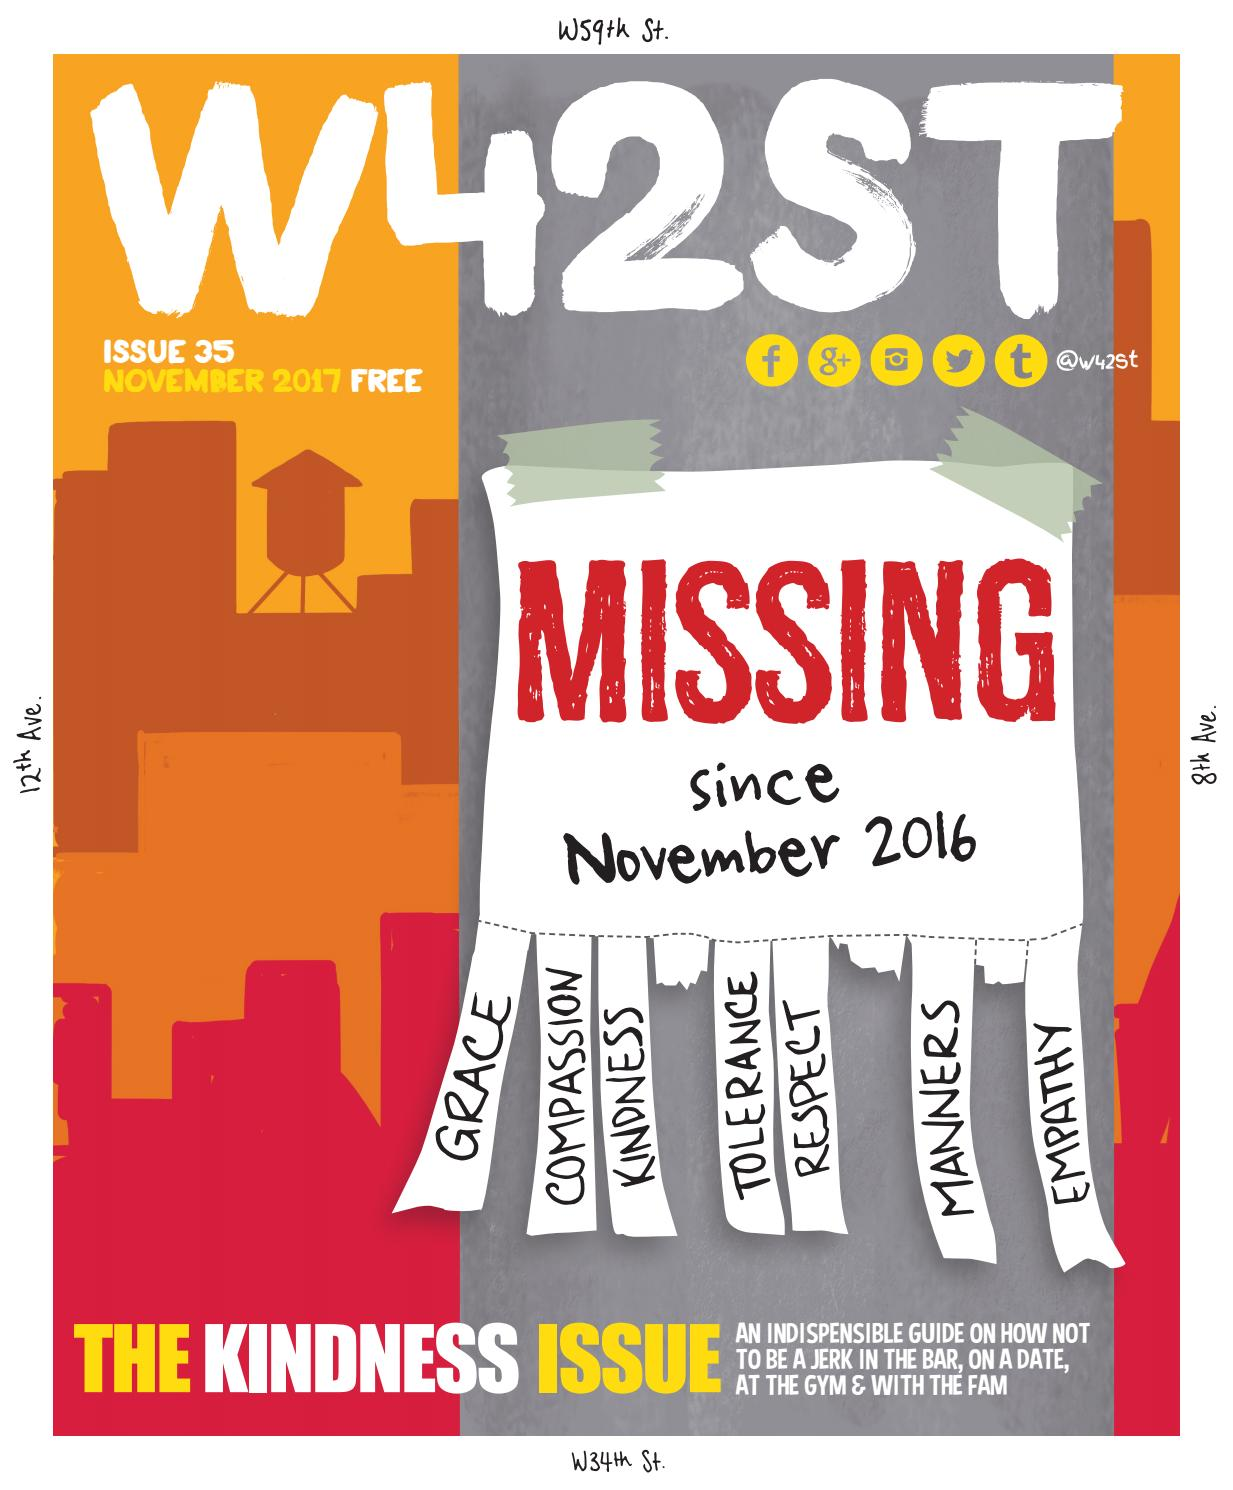 71bd505520ab3 W42ST Issue 35 - The Kindness Issue by W42ST Magazine - issuu